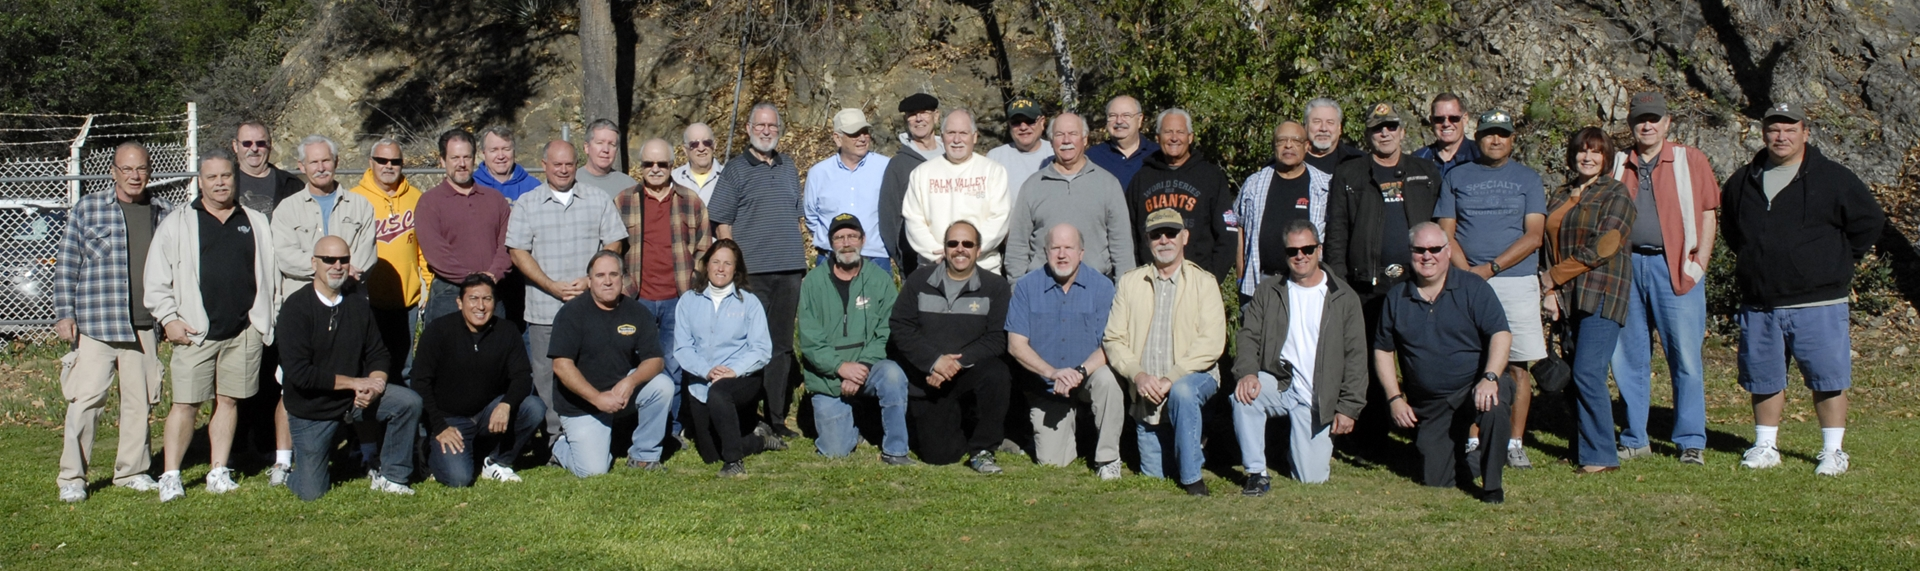 BPD RETIREES AT THE RANGE FOR THEIR ANNUAL GET TOGETHER